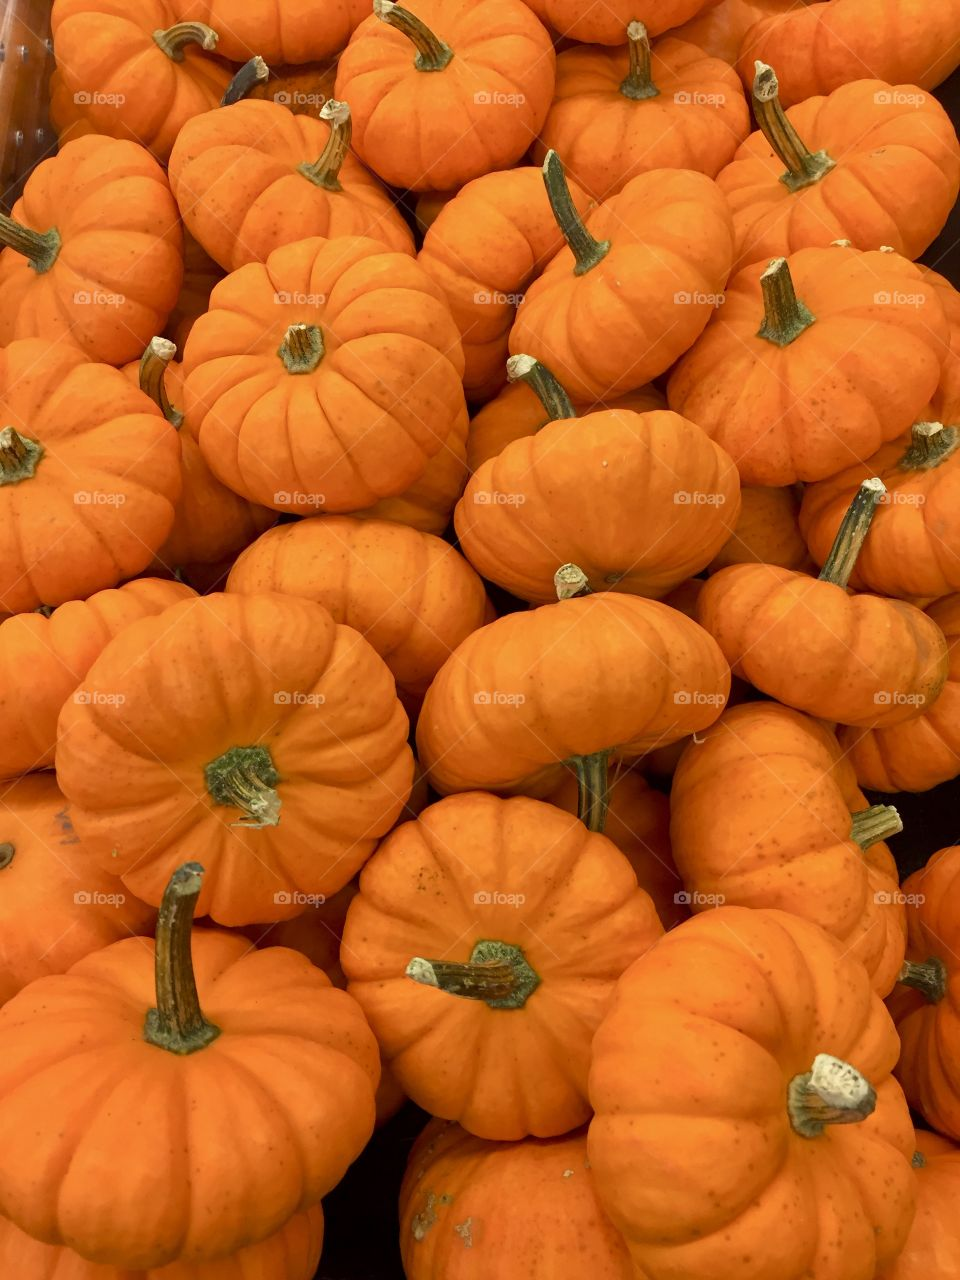 The orange color stories. Orange, orange pumpkins. Autumn is when the pumpkin harvest comes in, so it's one of the symbolic vegetables of that time of year. Pumpkins have become symbols of prosperity, growth and abundance.